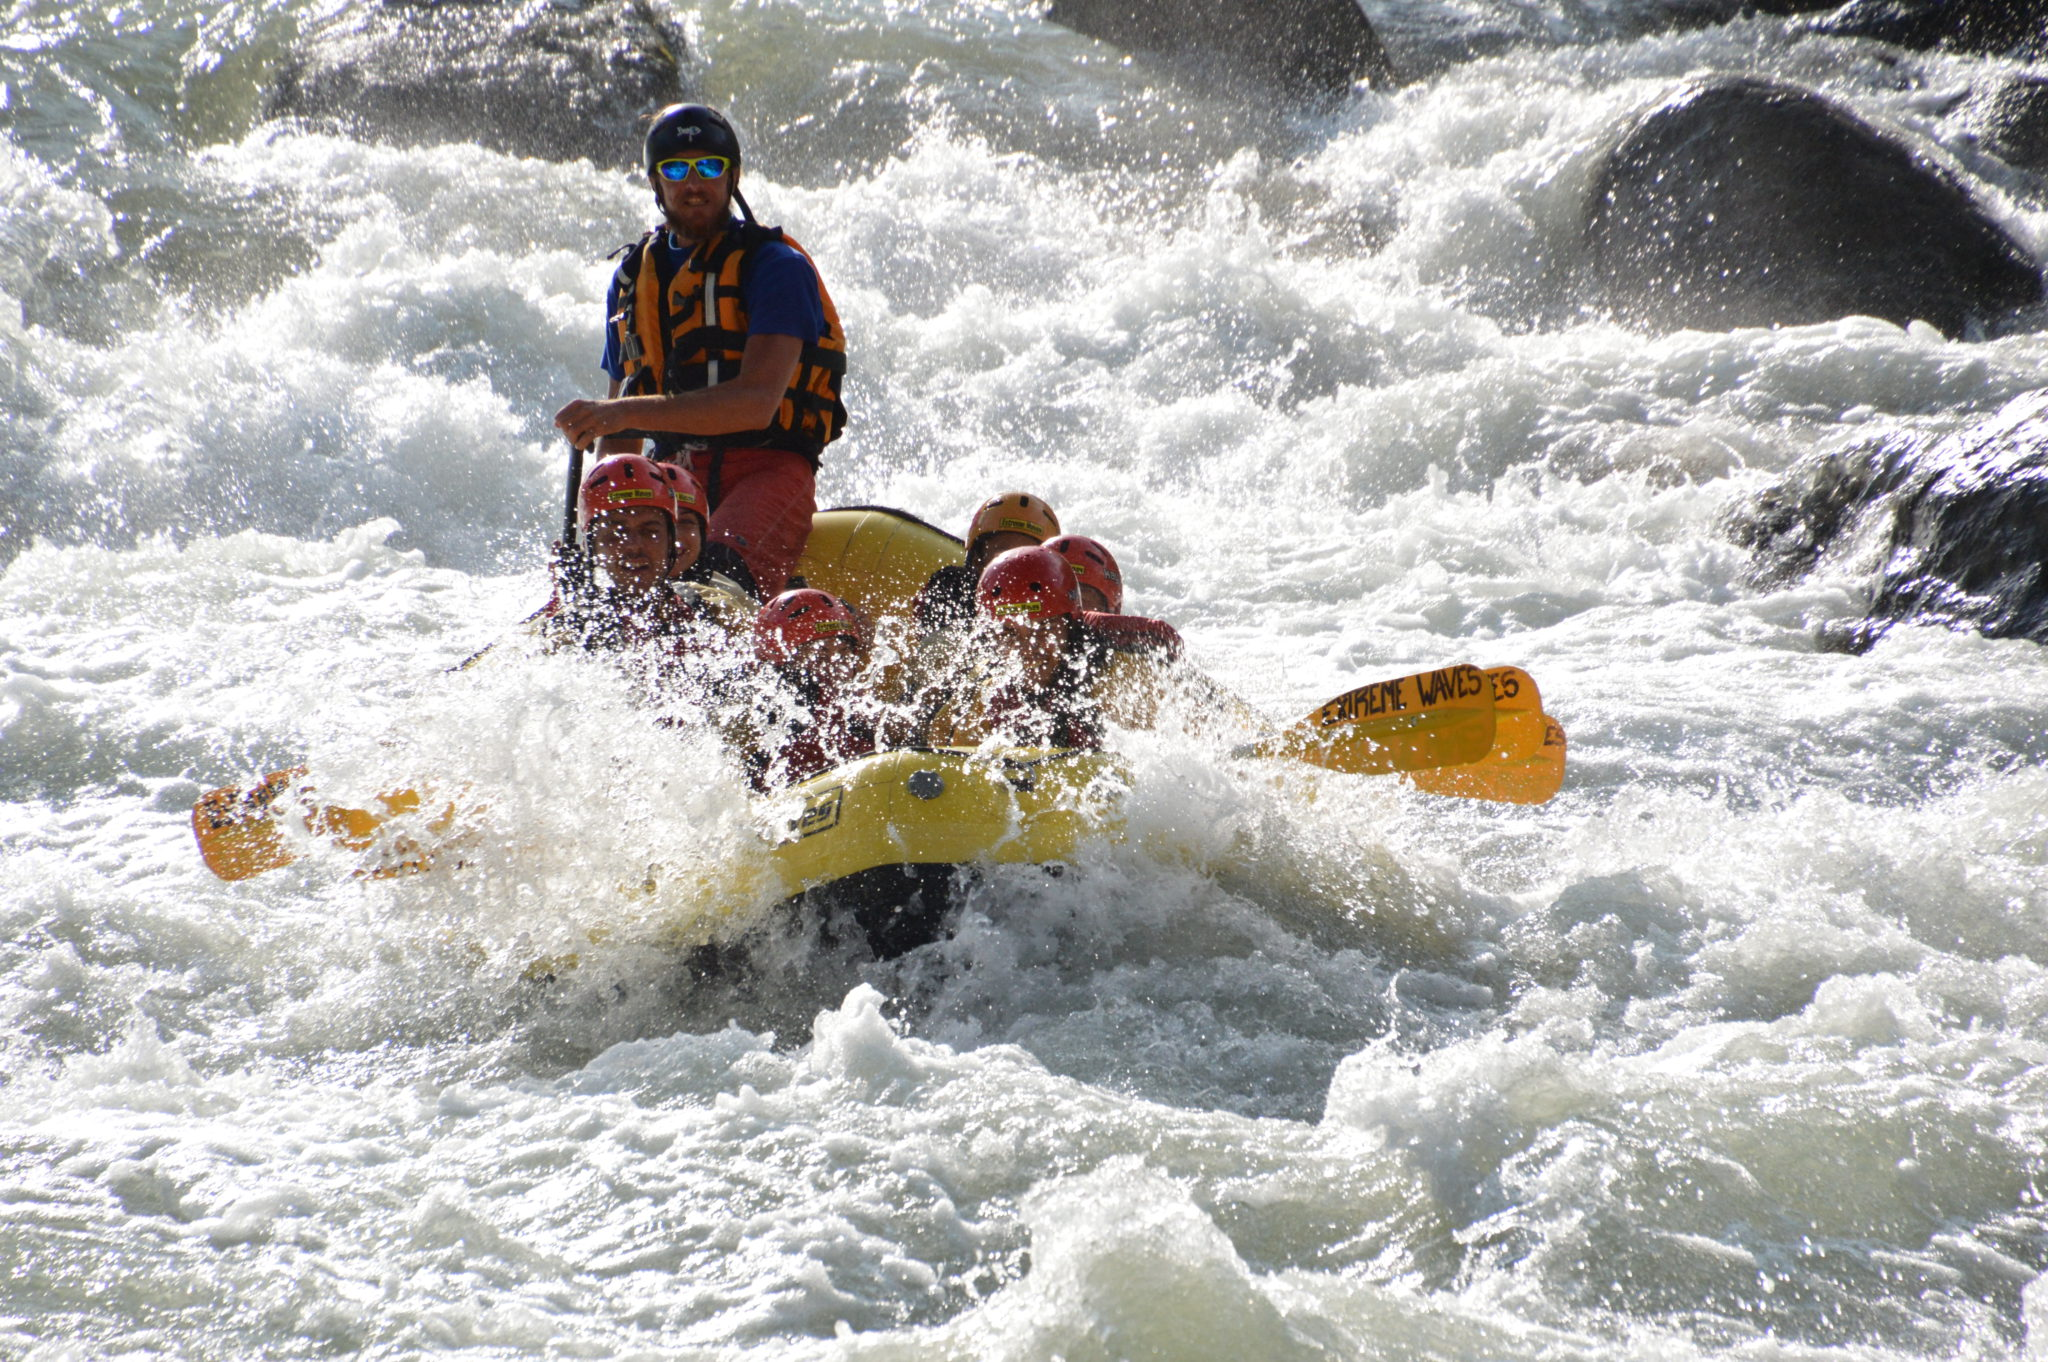 Upper Noce River white water rafting experience in Italy